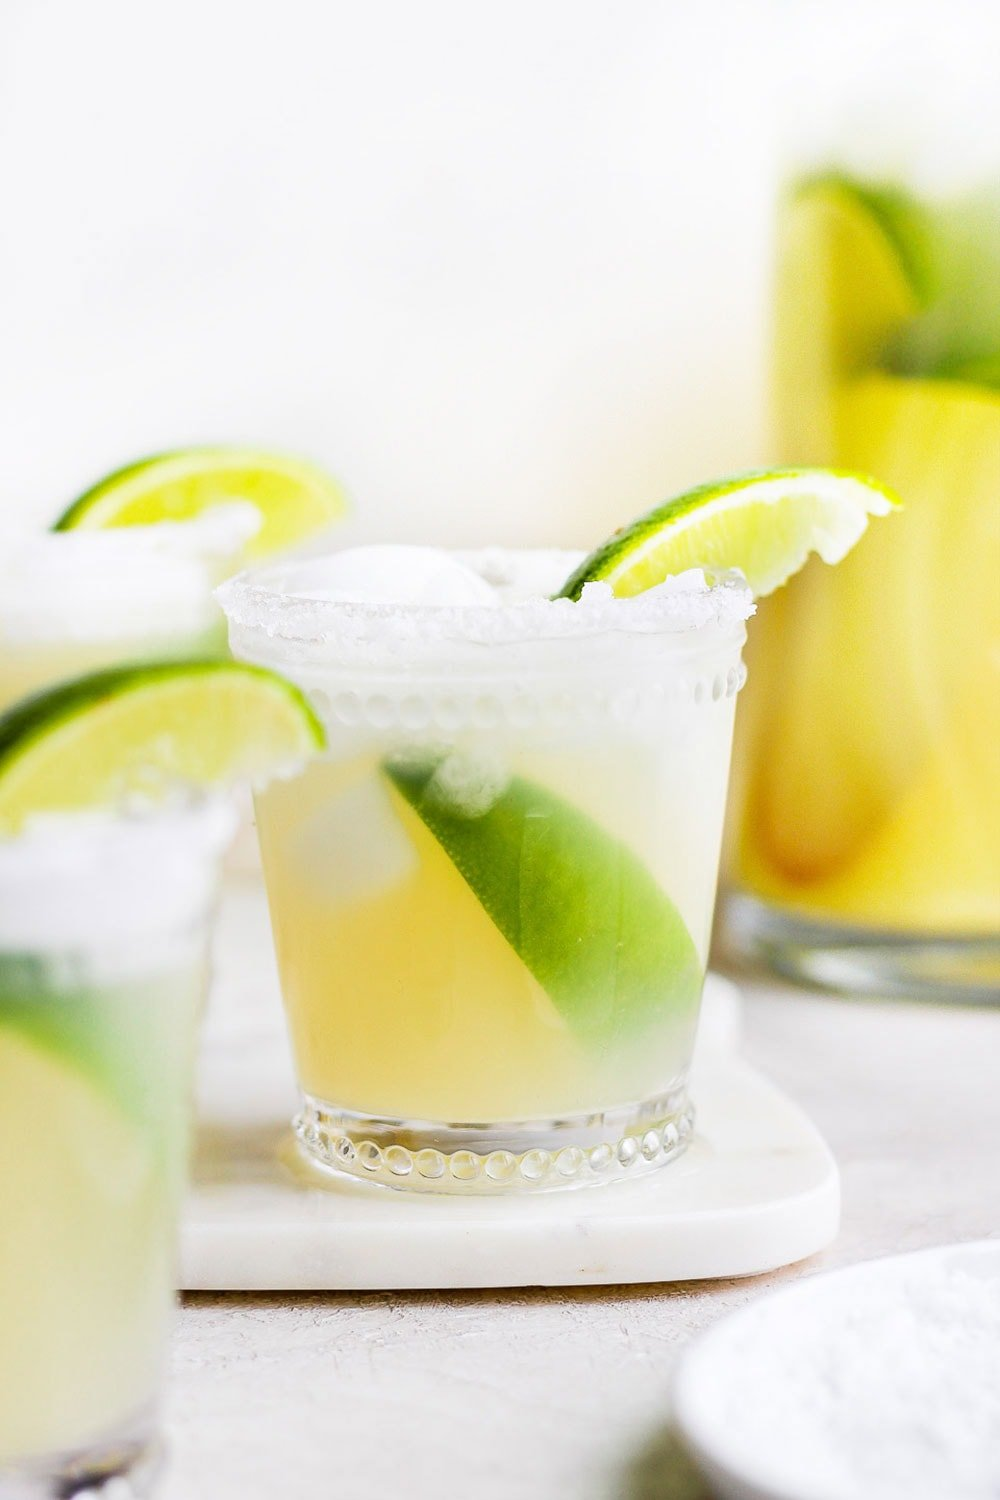 margarita in glass with limes